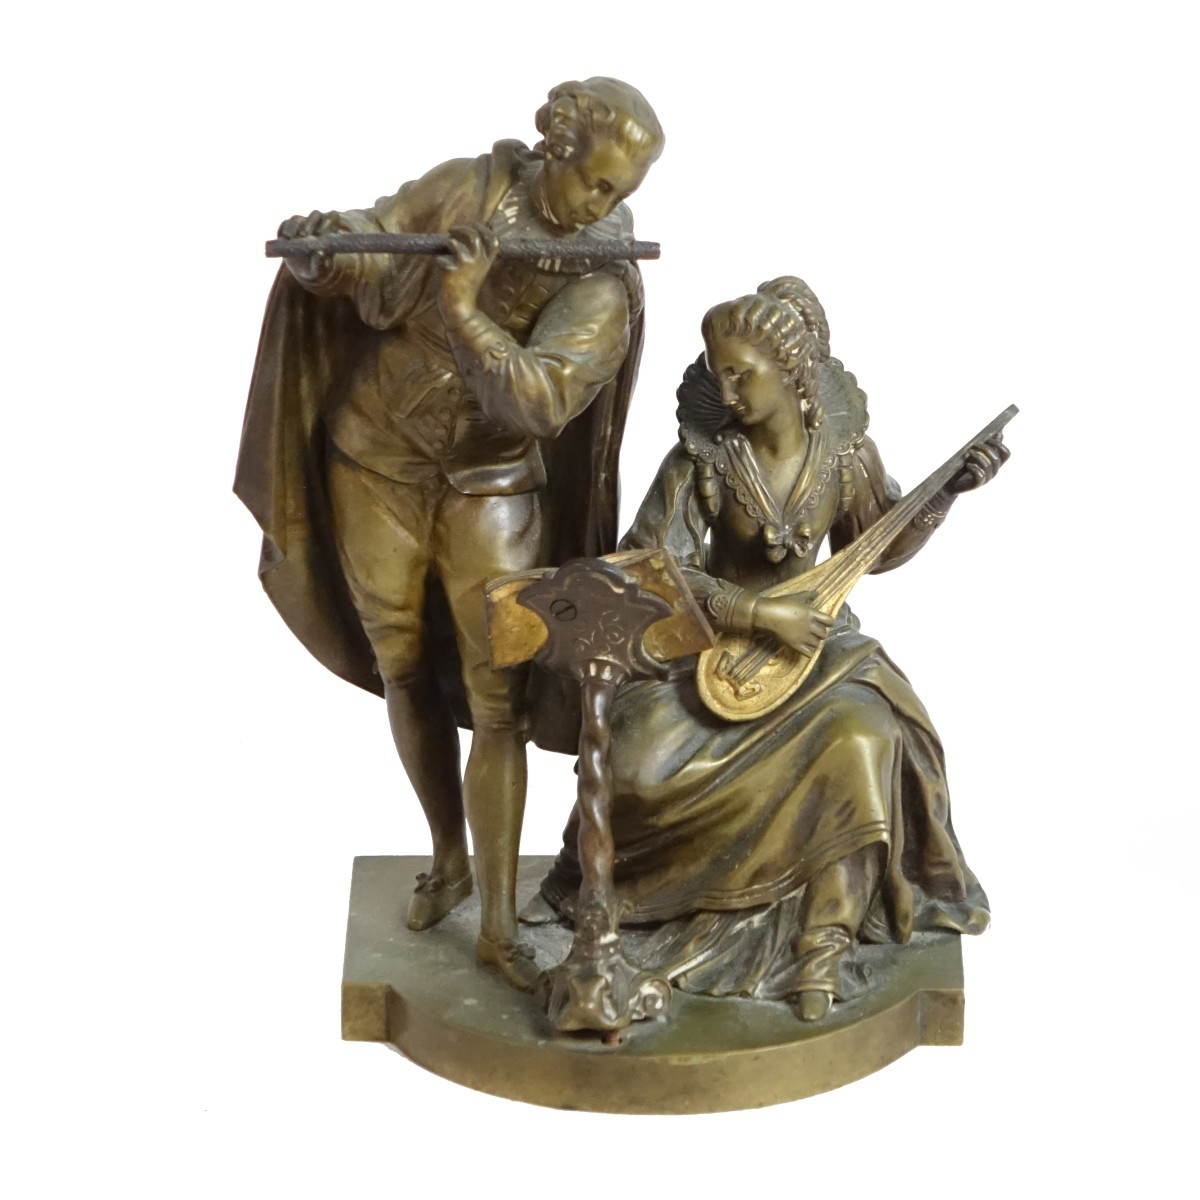 20th C. French Bronze Sculpture of Musicians